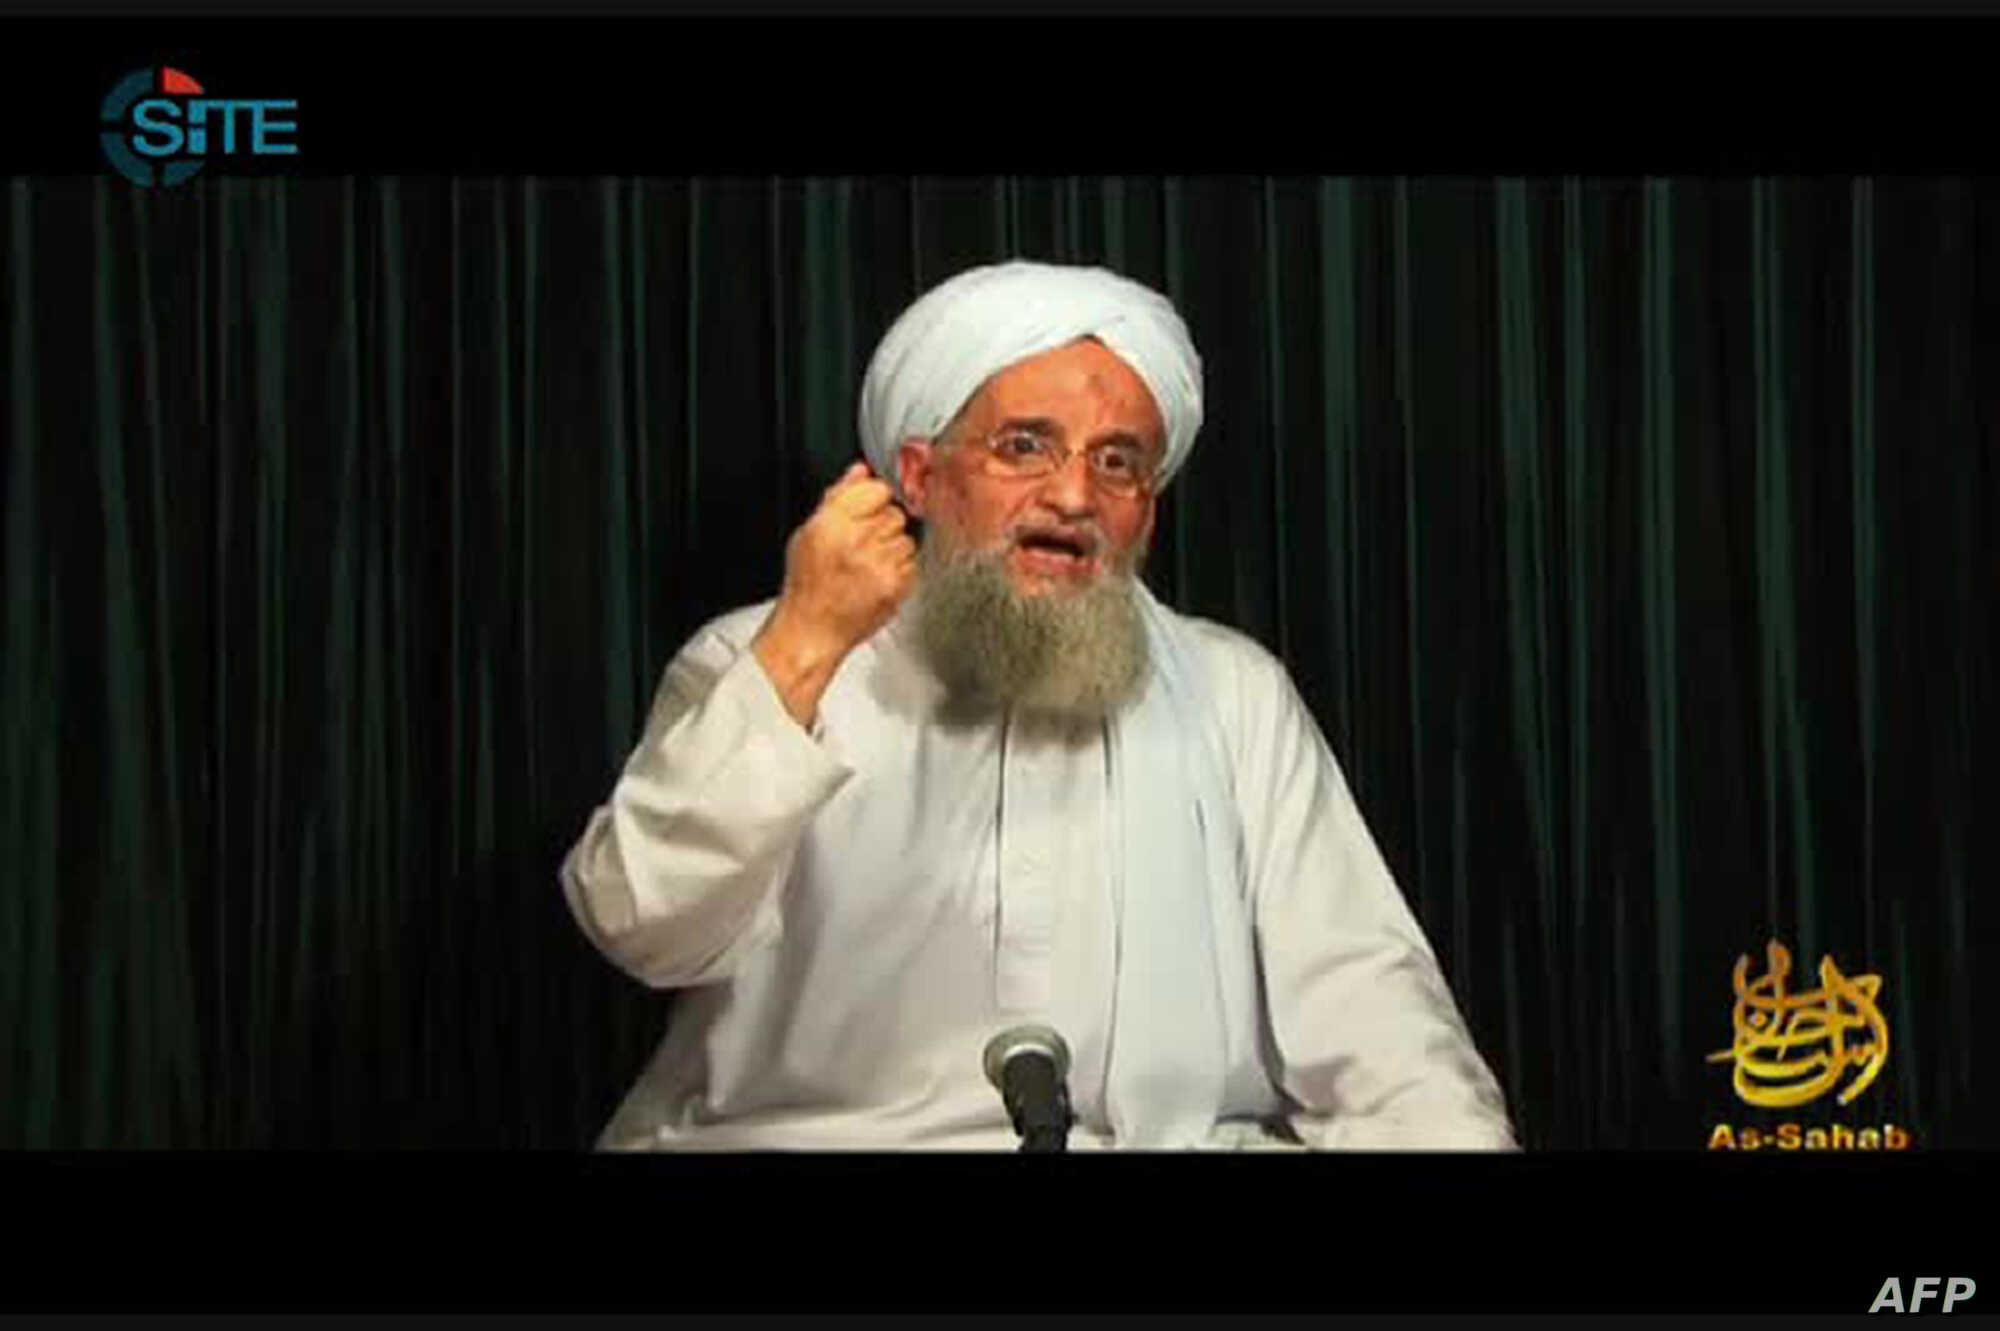 FILE - This still image from video obtained Oct. 26, 2012 courtesy of the Site Intelligence Group, shows al-Qaida leader Ayman al-Zawahiri speaking in a video, from an undisclosed location, released by al-Qaida's media arm, as-Sahab.